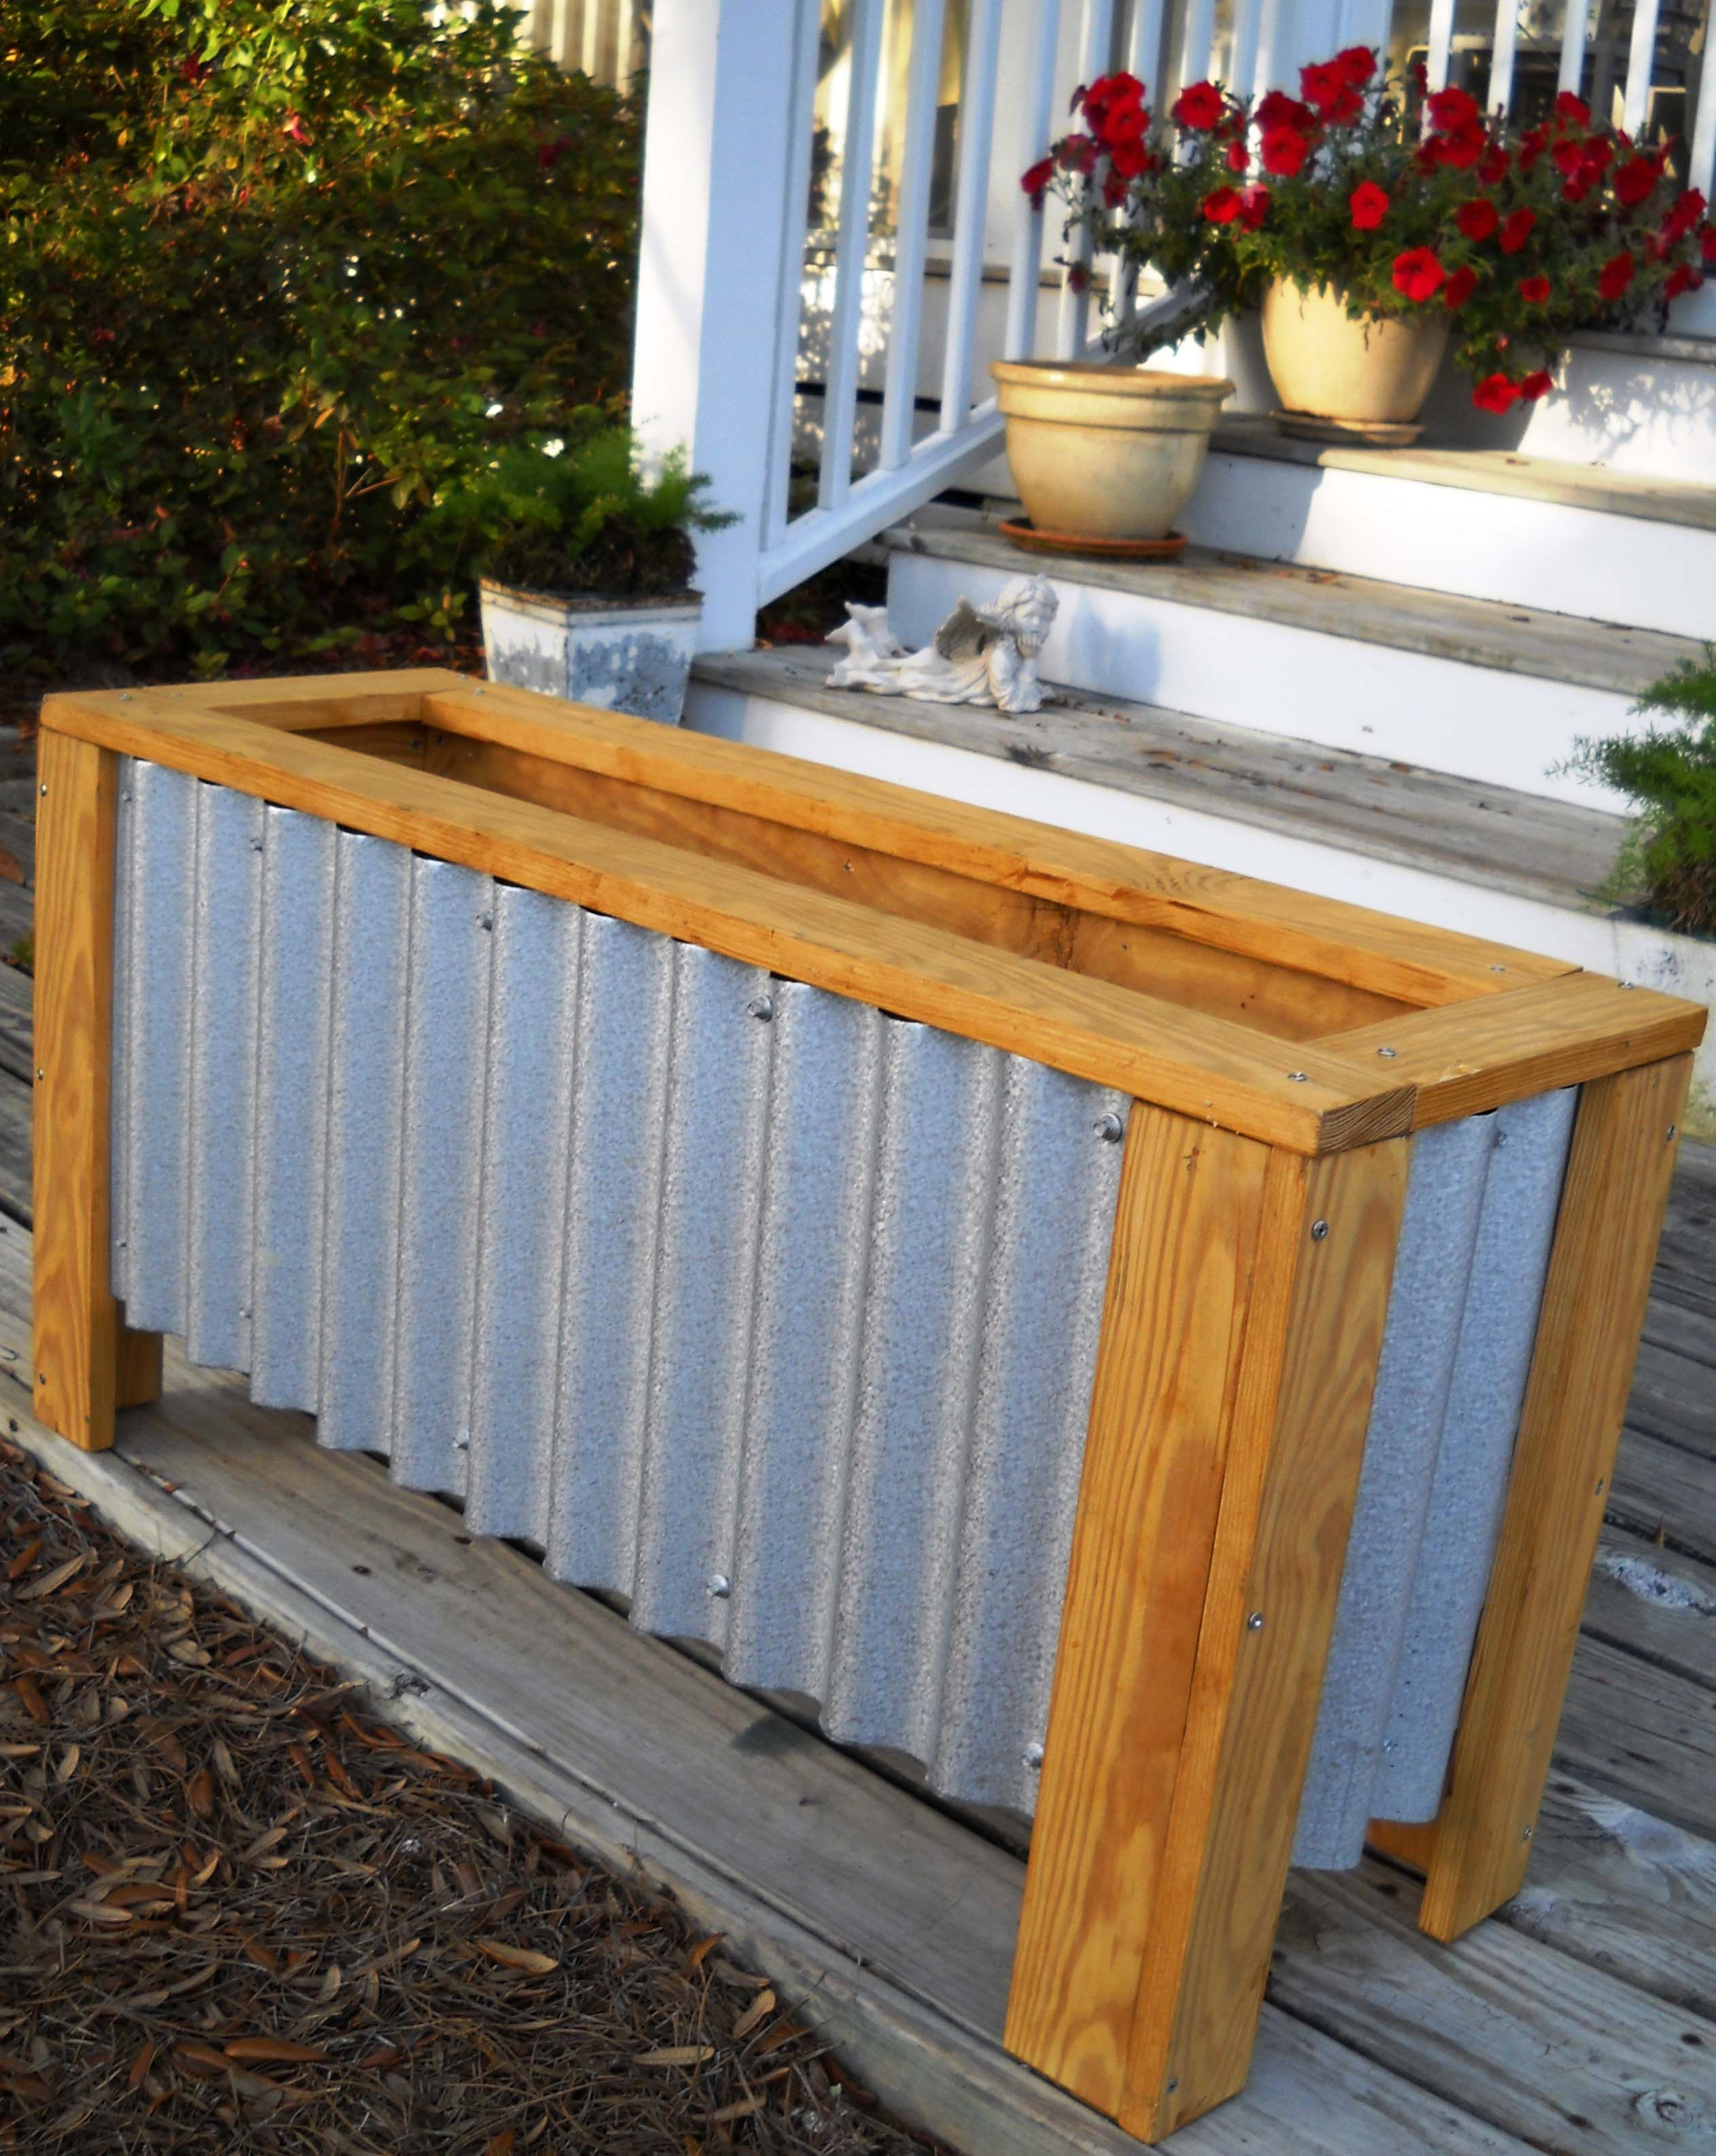 Diy Corrugated Patio Cover: DIY Corrugated Steel + Wood Planter Box